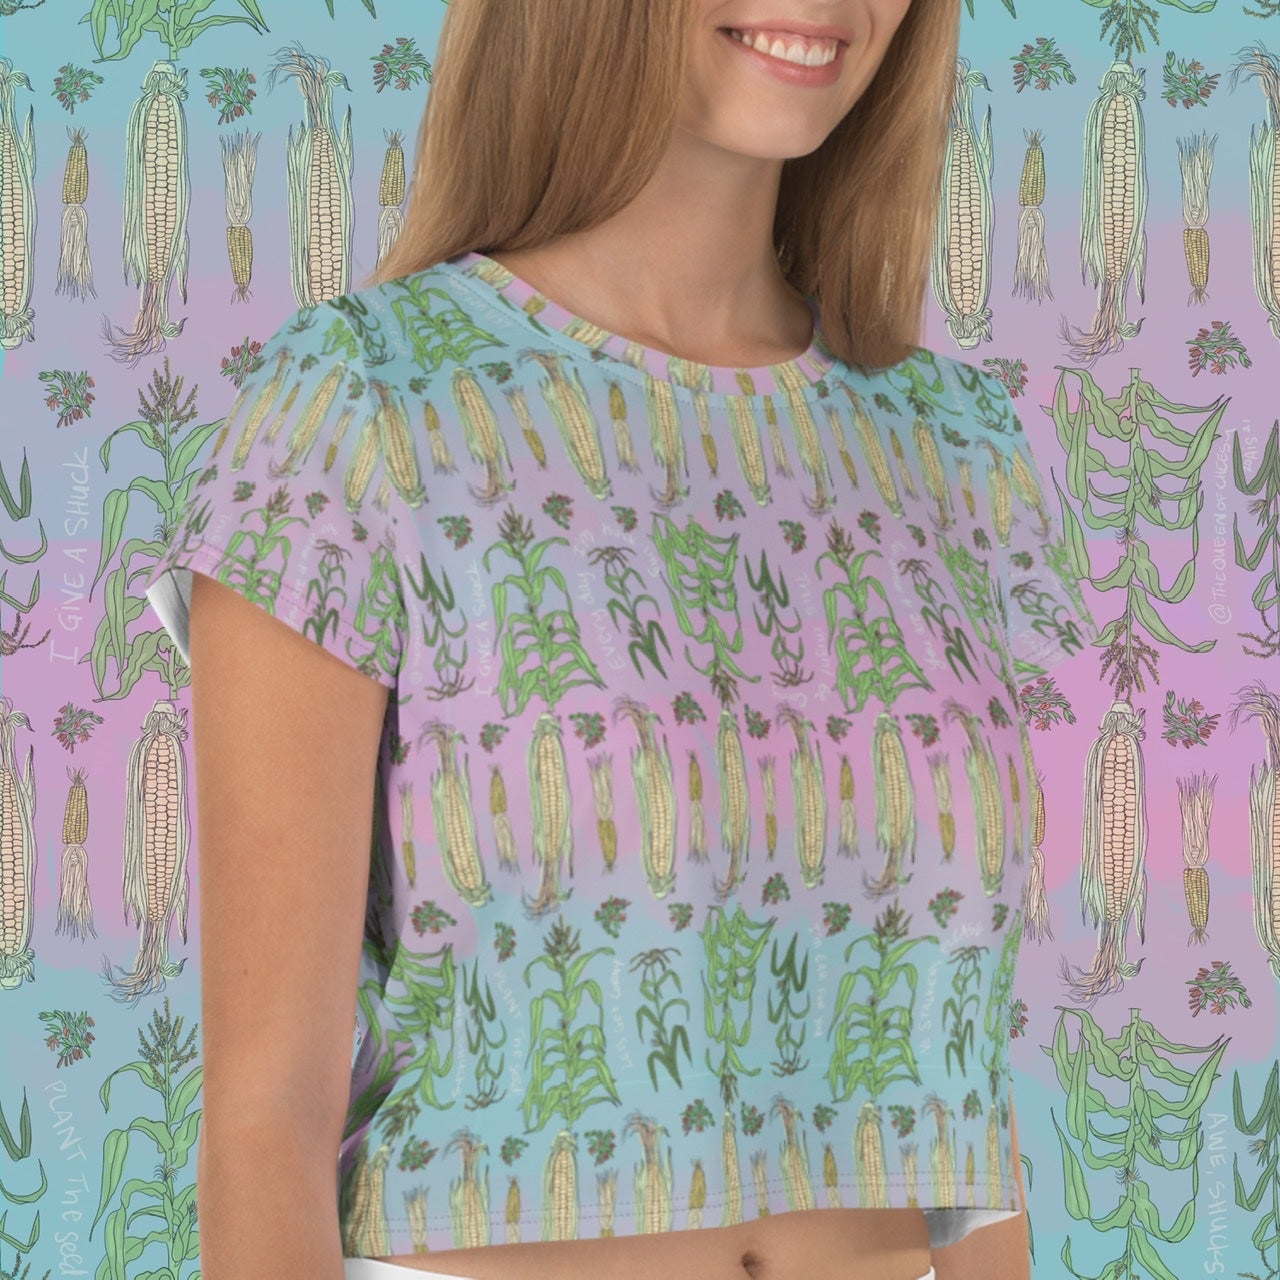 Image of Corny All-Over Print punny Crop Top Tee